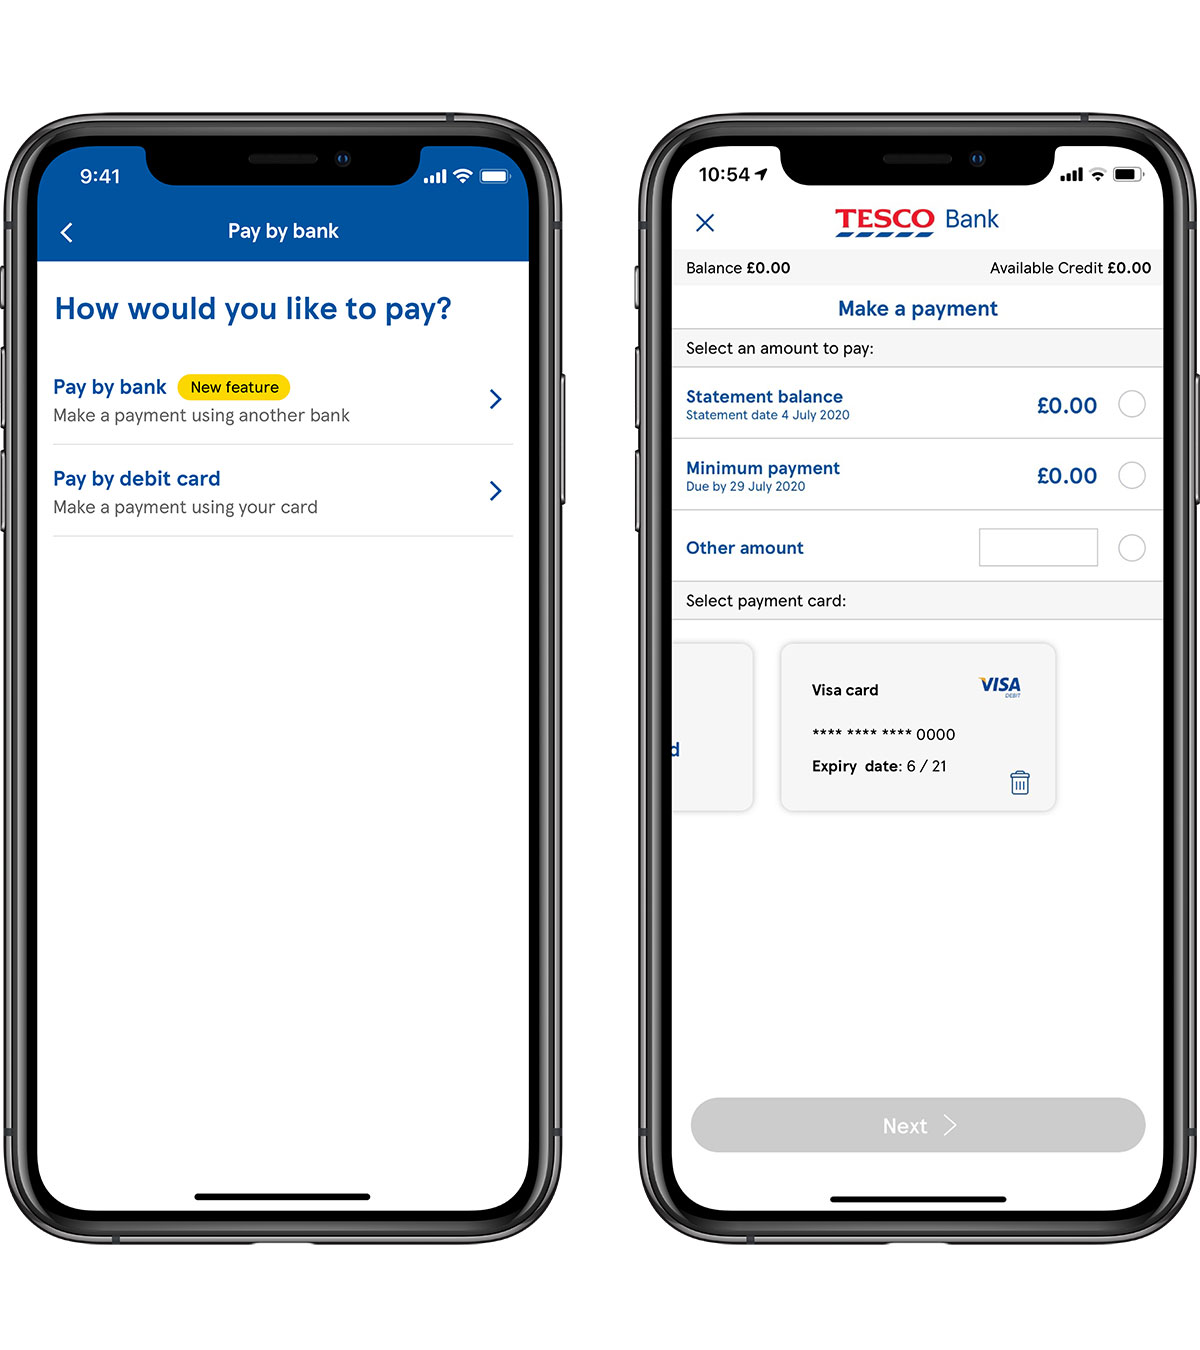 Credit card payments in the mobile app